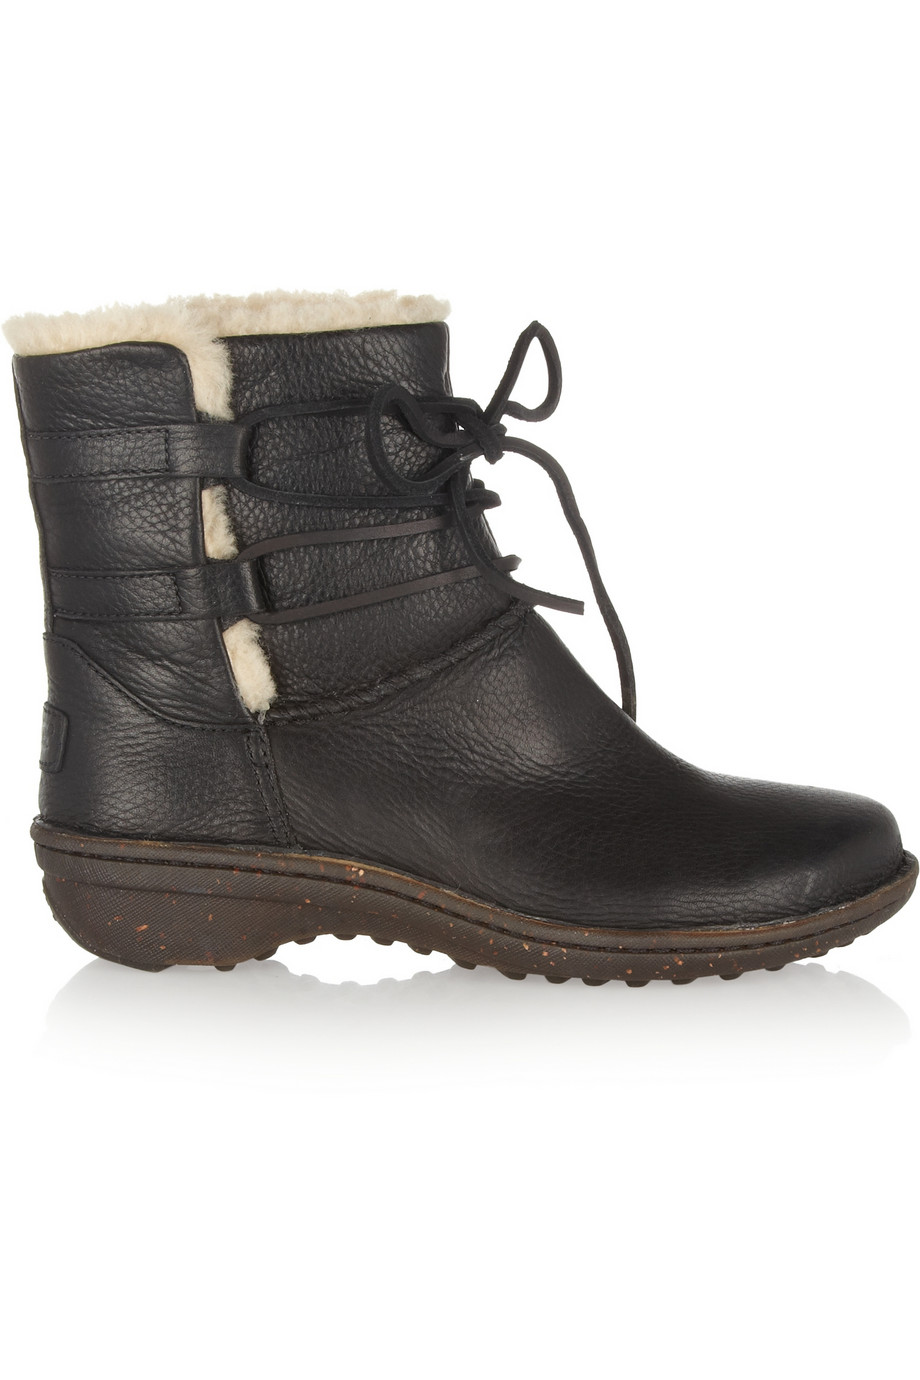 769dcf0ae9a UGG Caspia Lace-Up Leather Ankle Boots in Black - Lyst